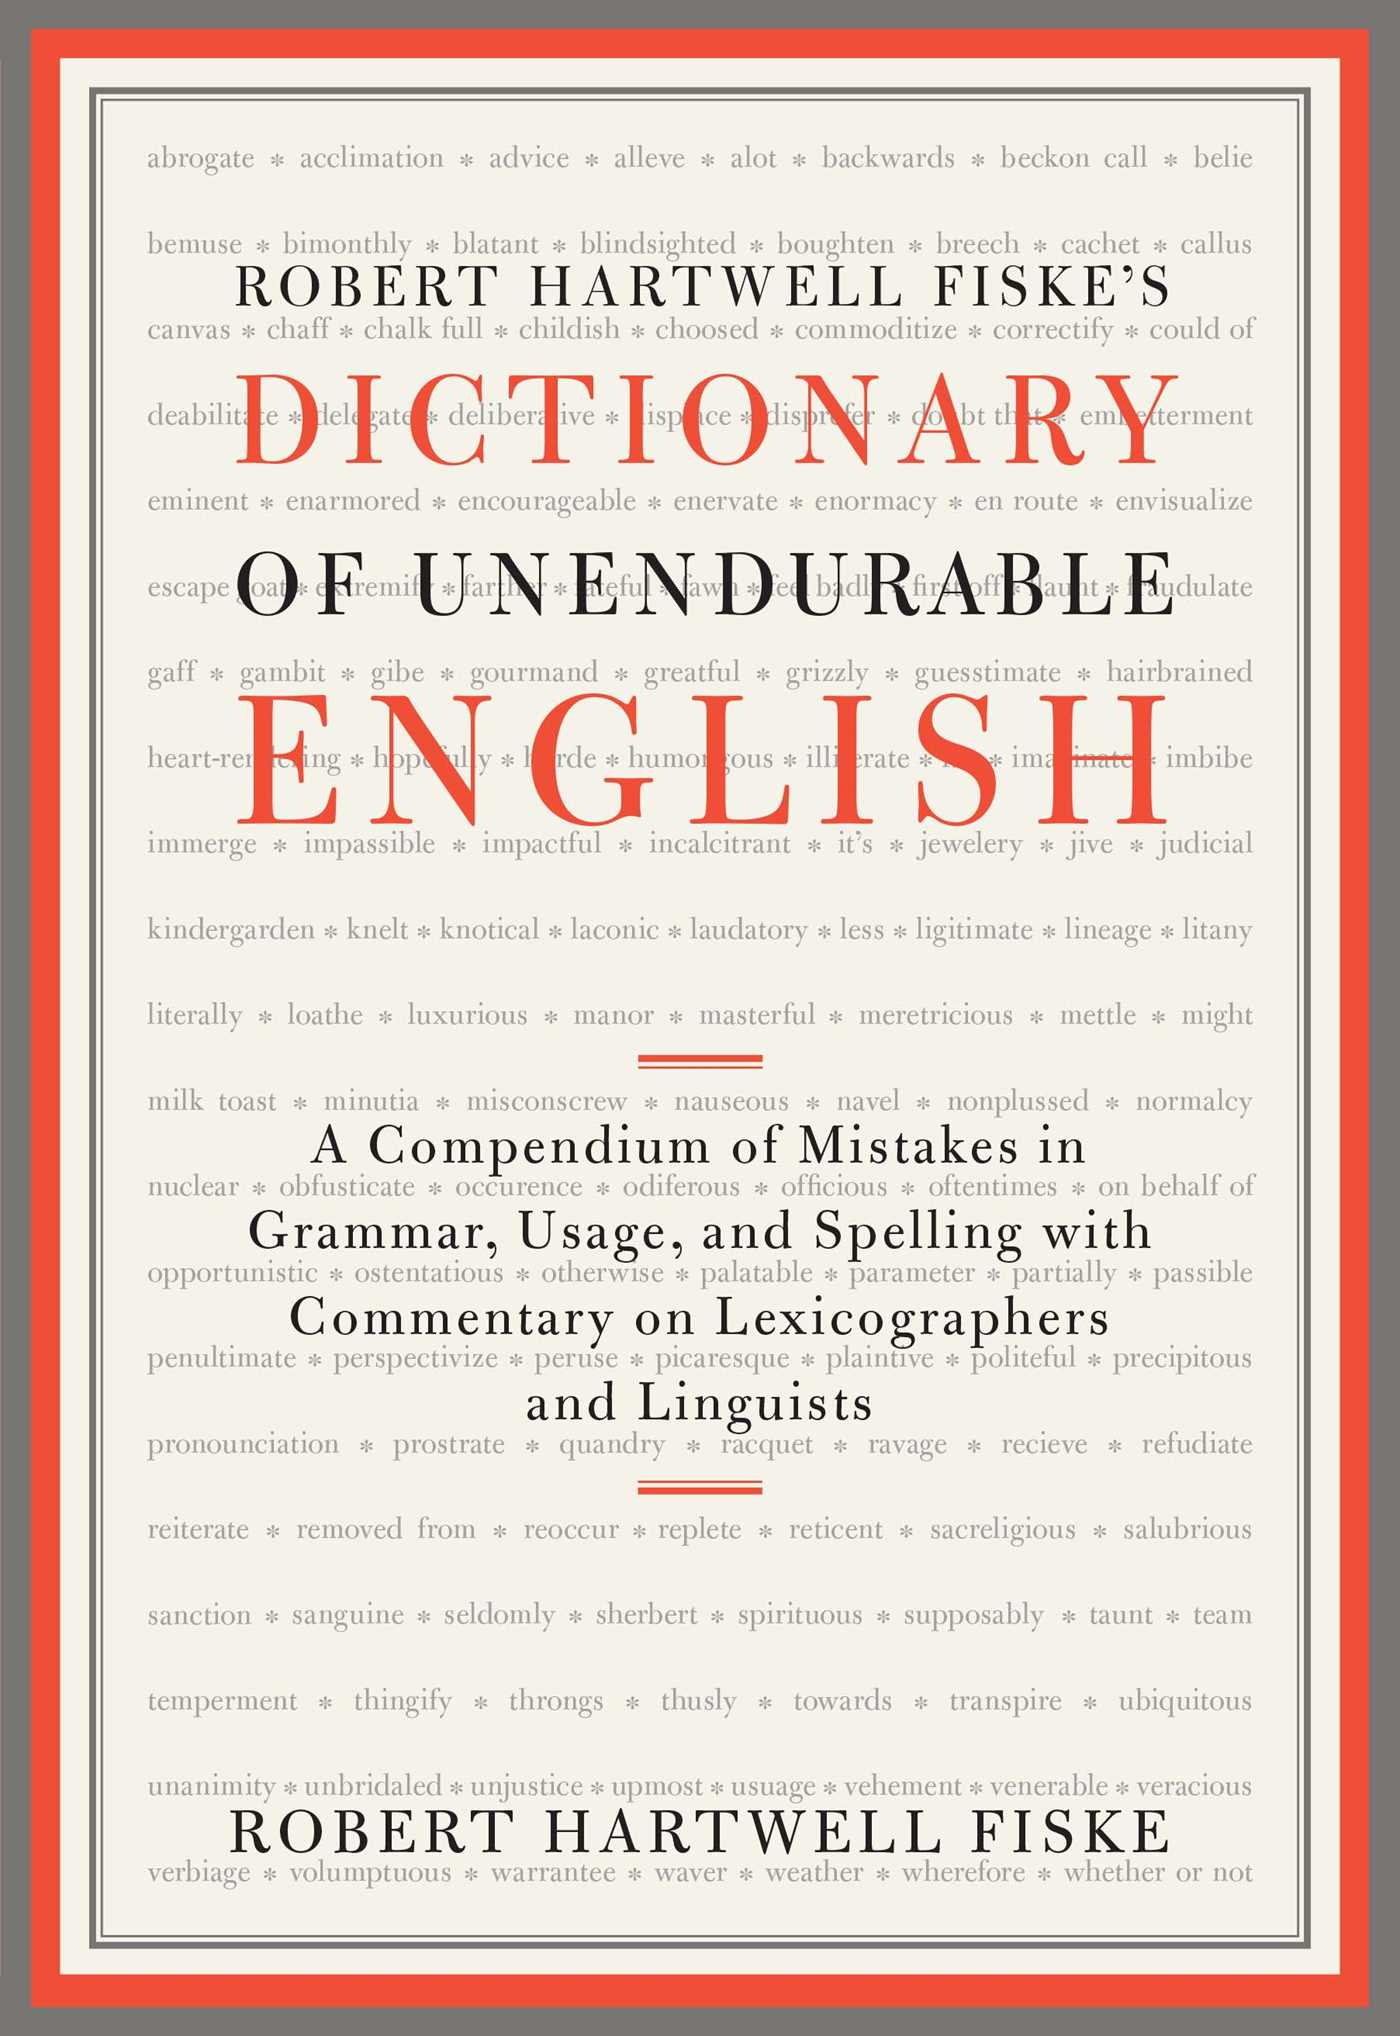 Robert-hartwell-fiskes-dictionary-of-unendurable-english-9781451651348_hr